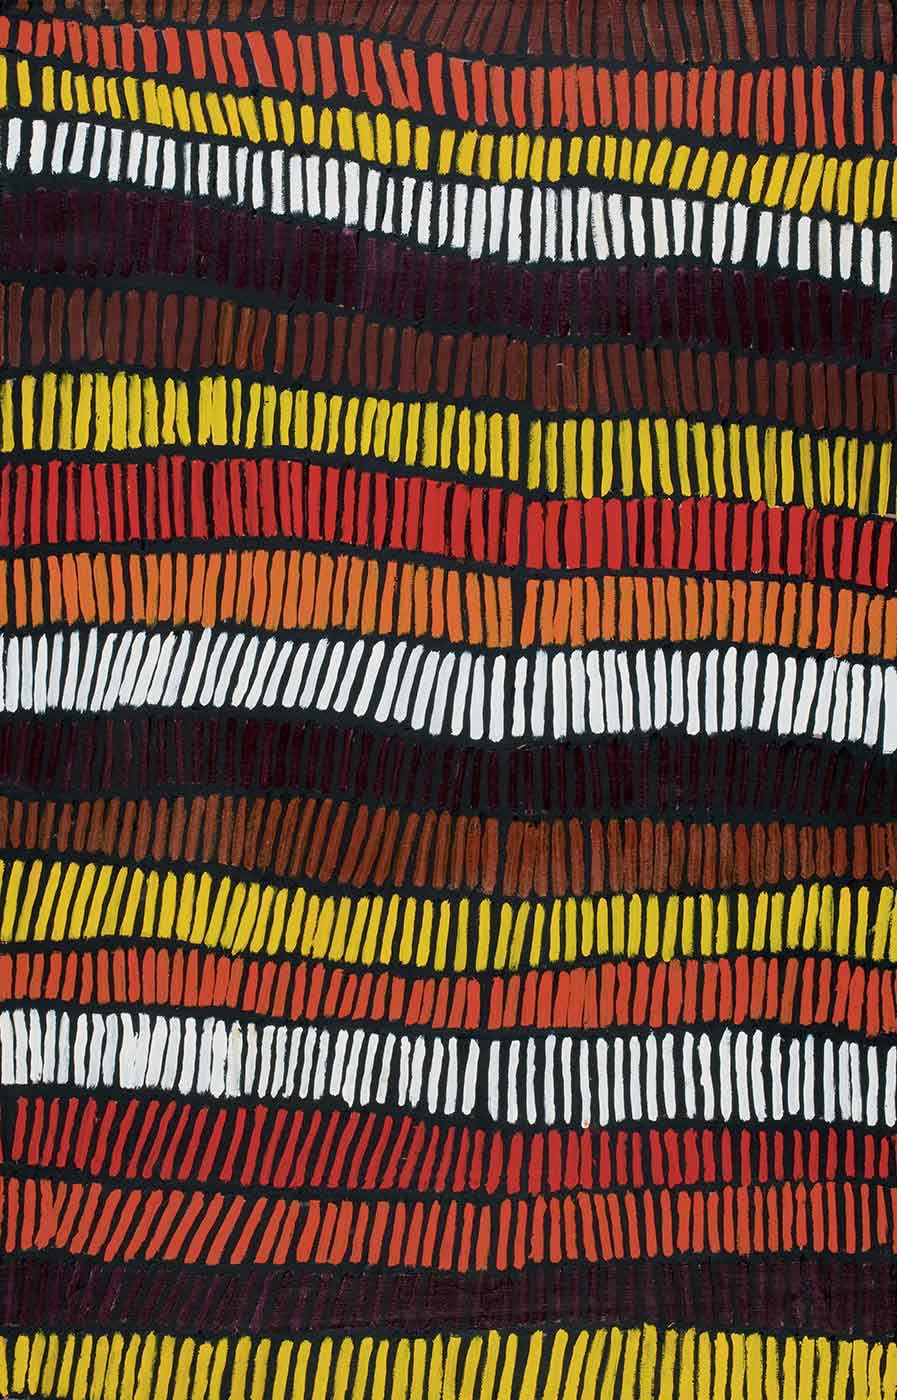 A painting on brown linen with horizontal rows of vertical strokes in yellow, brown, burgundy, orange, red and white on a black background. - click to view larger image